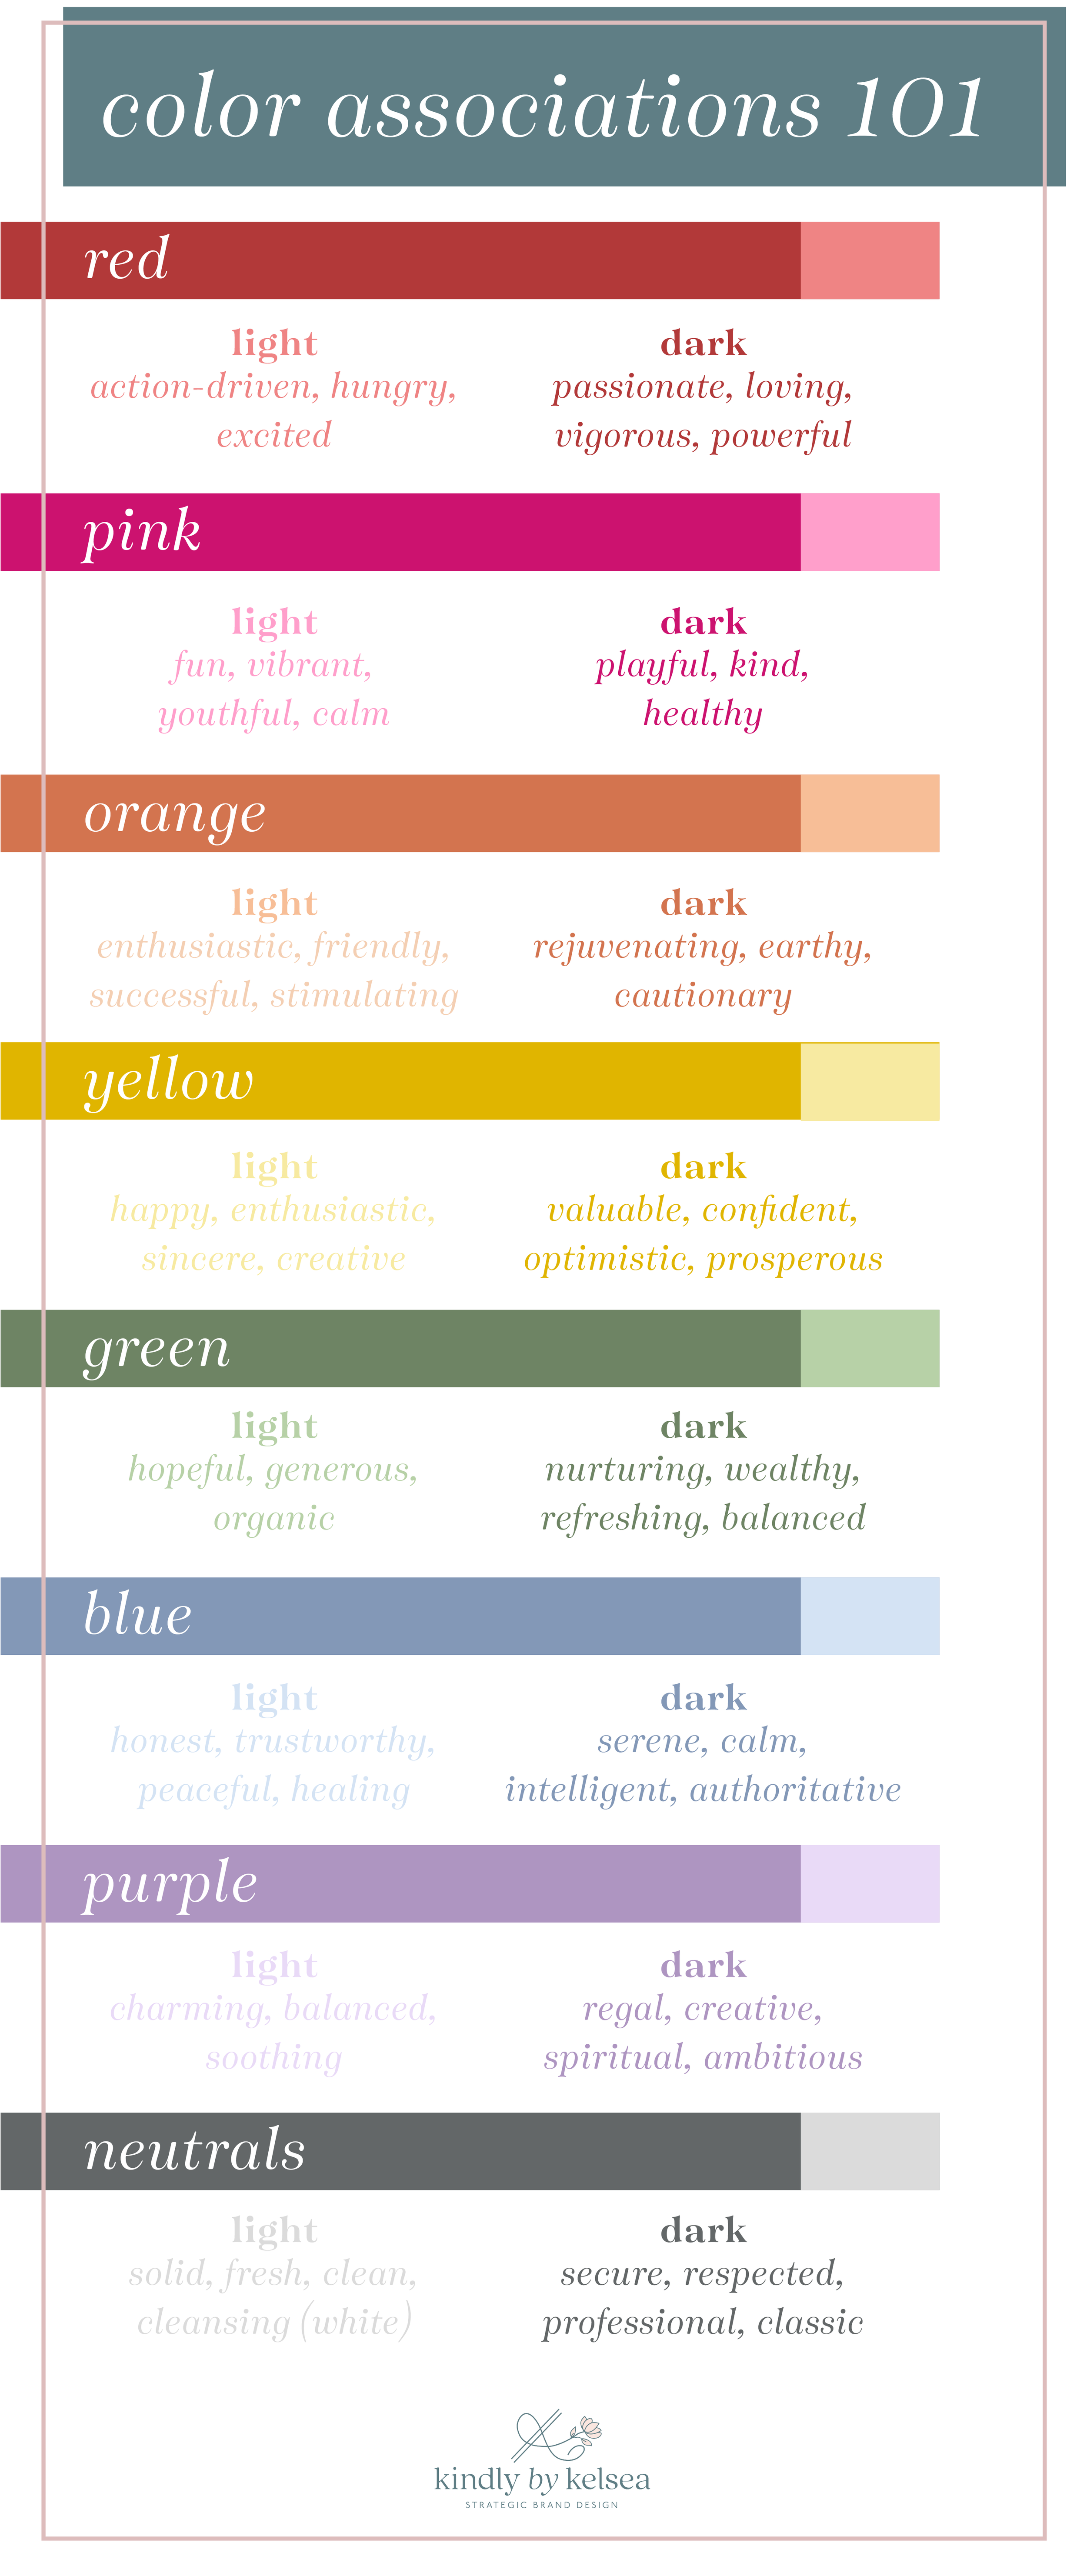 Color Theory 101: How to Choose Your Brand Colors through Color Associations by Kindly by Kelsea